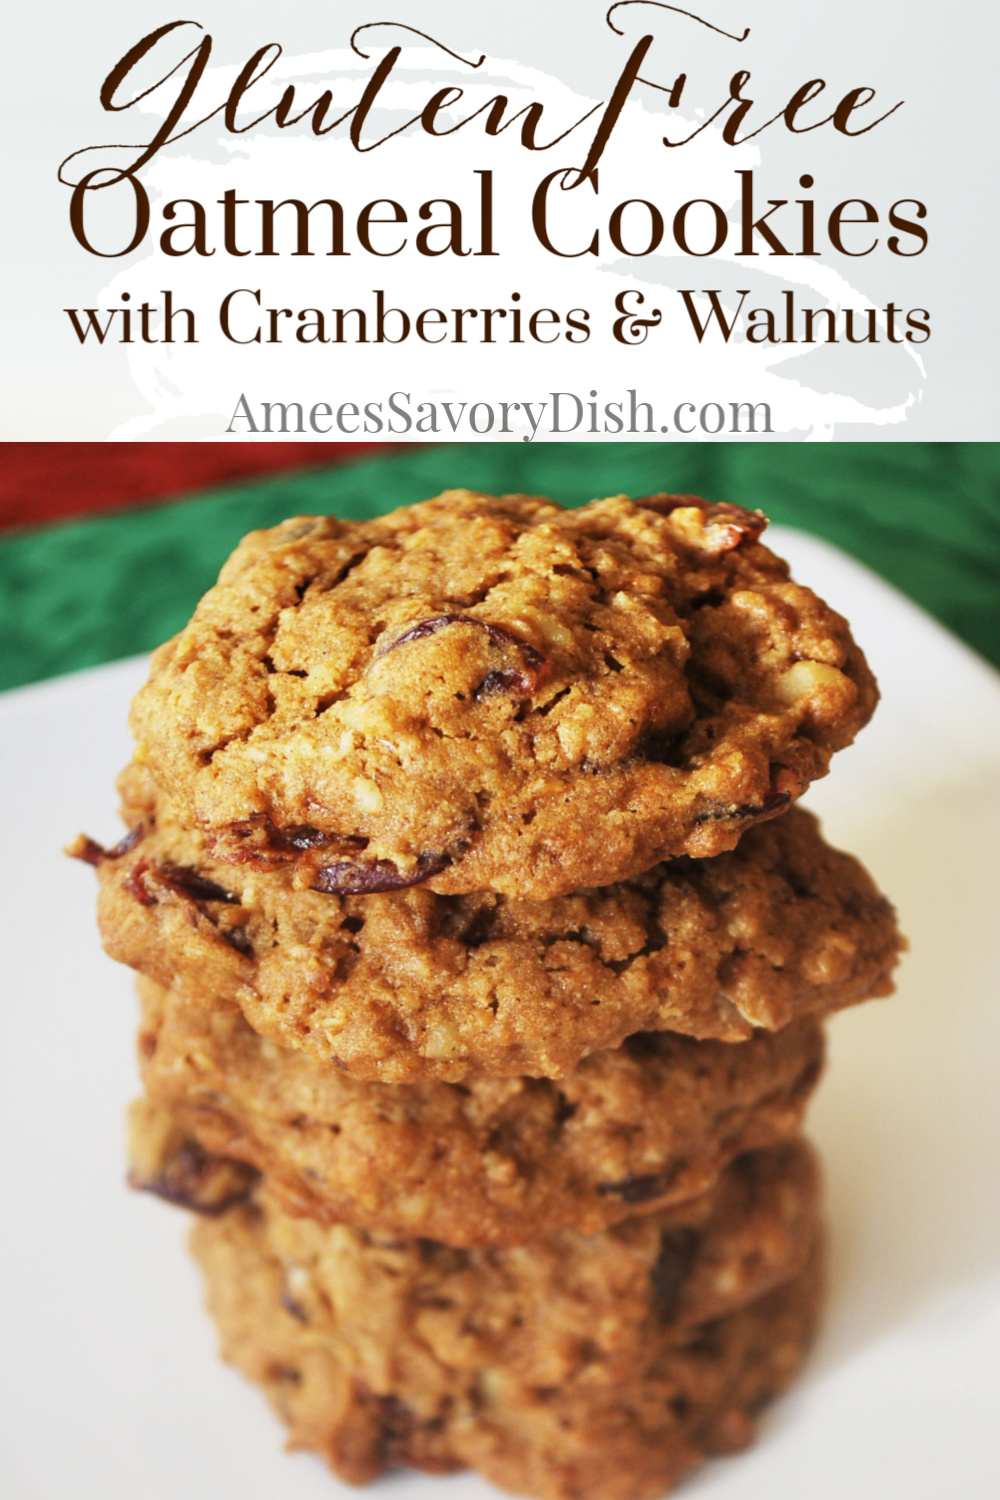 I gave my favorite oatmeal cookies a healthier makeover using healthy gluten-free grains and unrefined sweeteners.  These Gluten-Free Oatmeal Cookies with Cranberries and Walnuts are amazingly delicious!!   via @Ameecooks